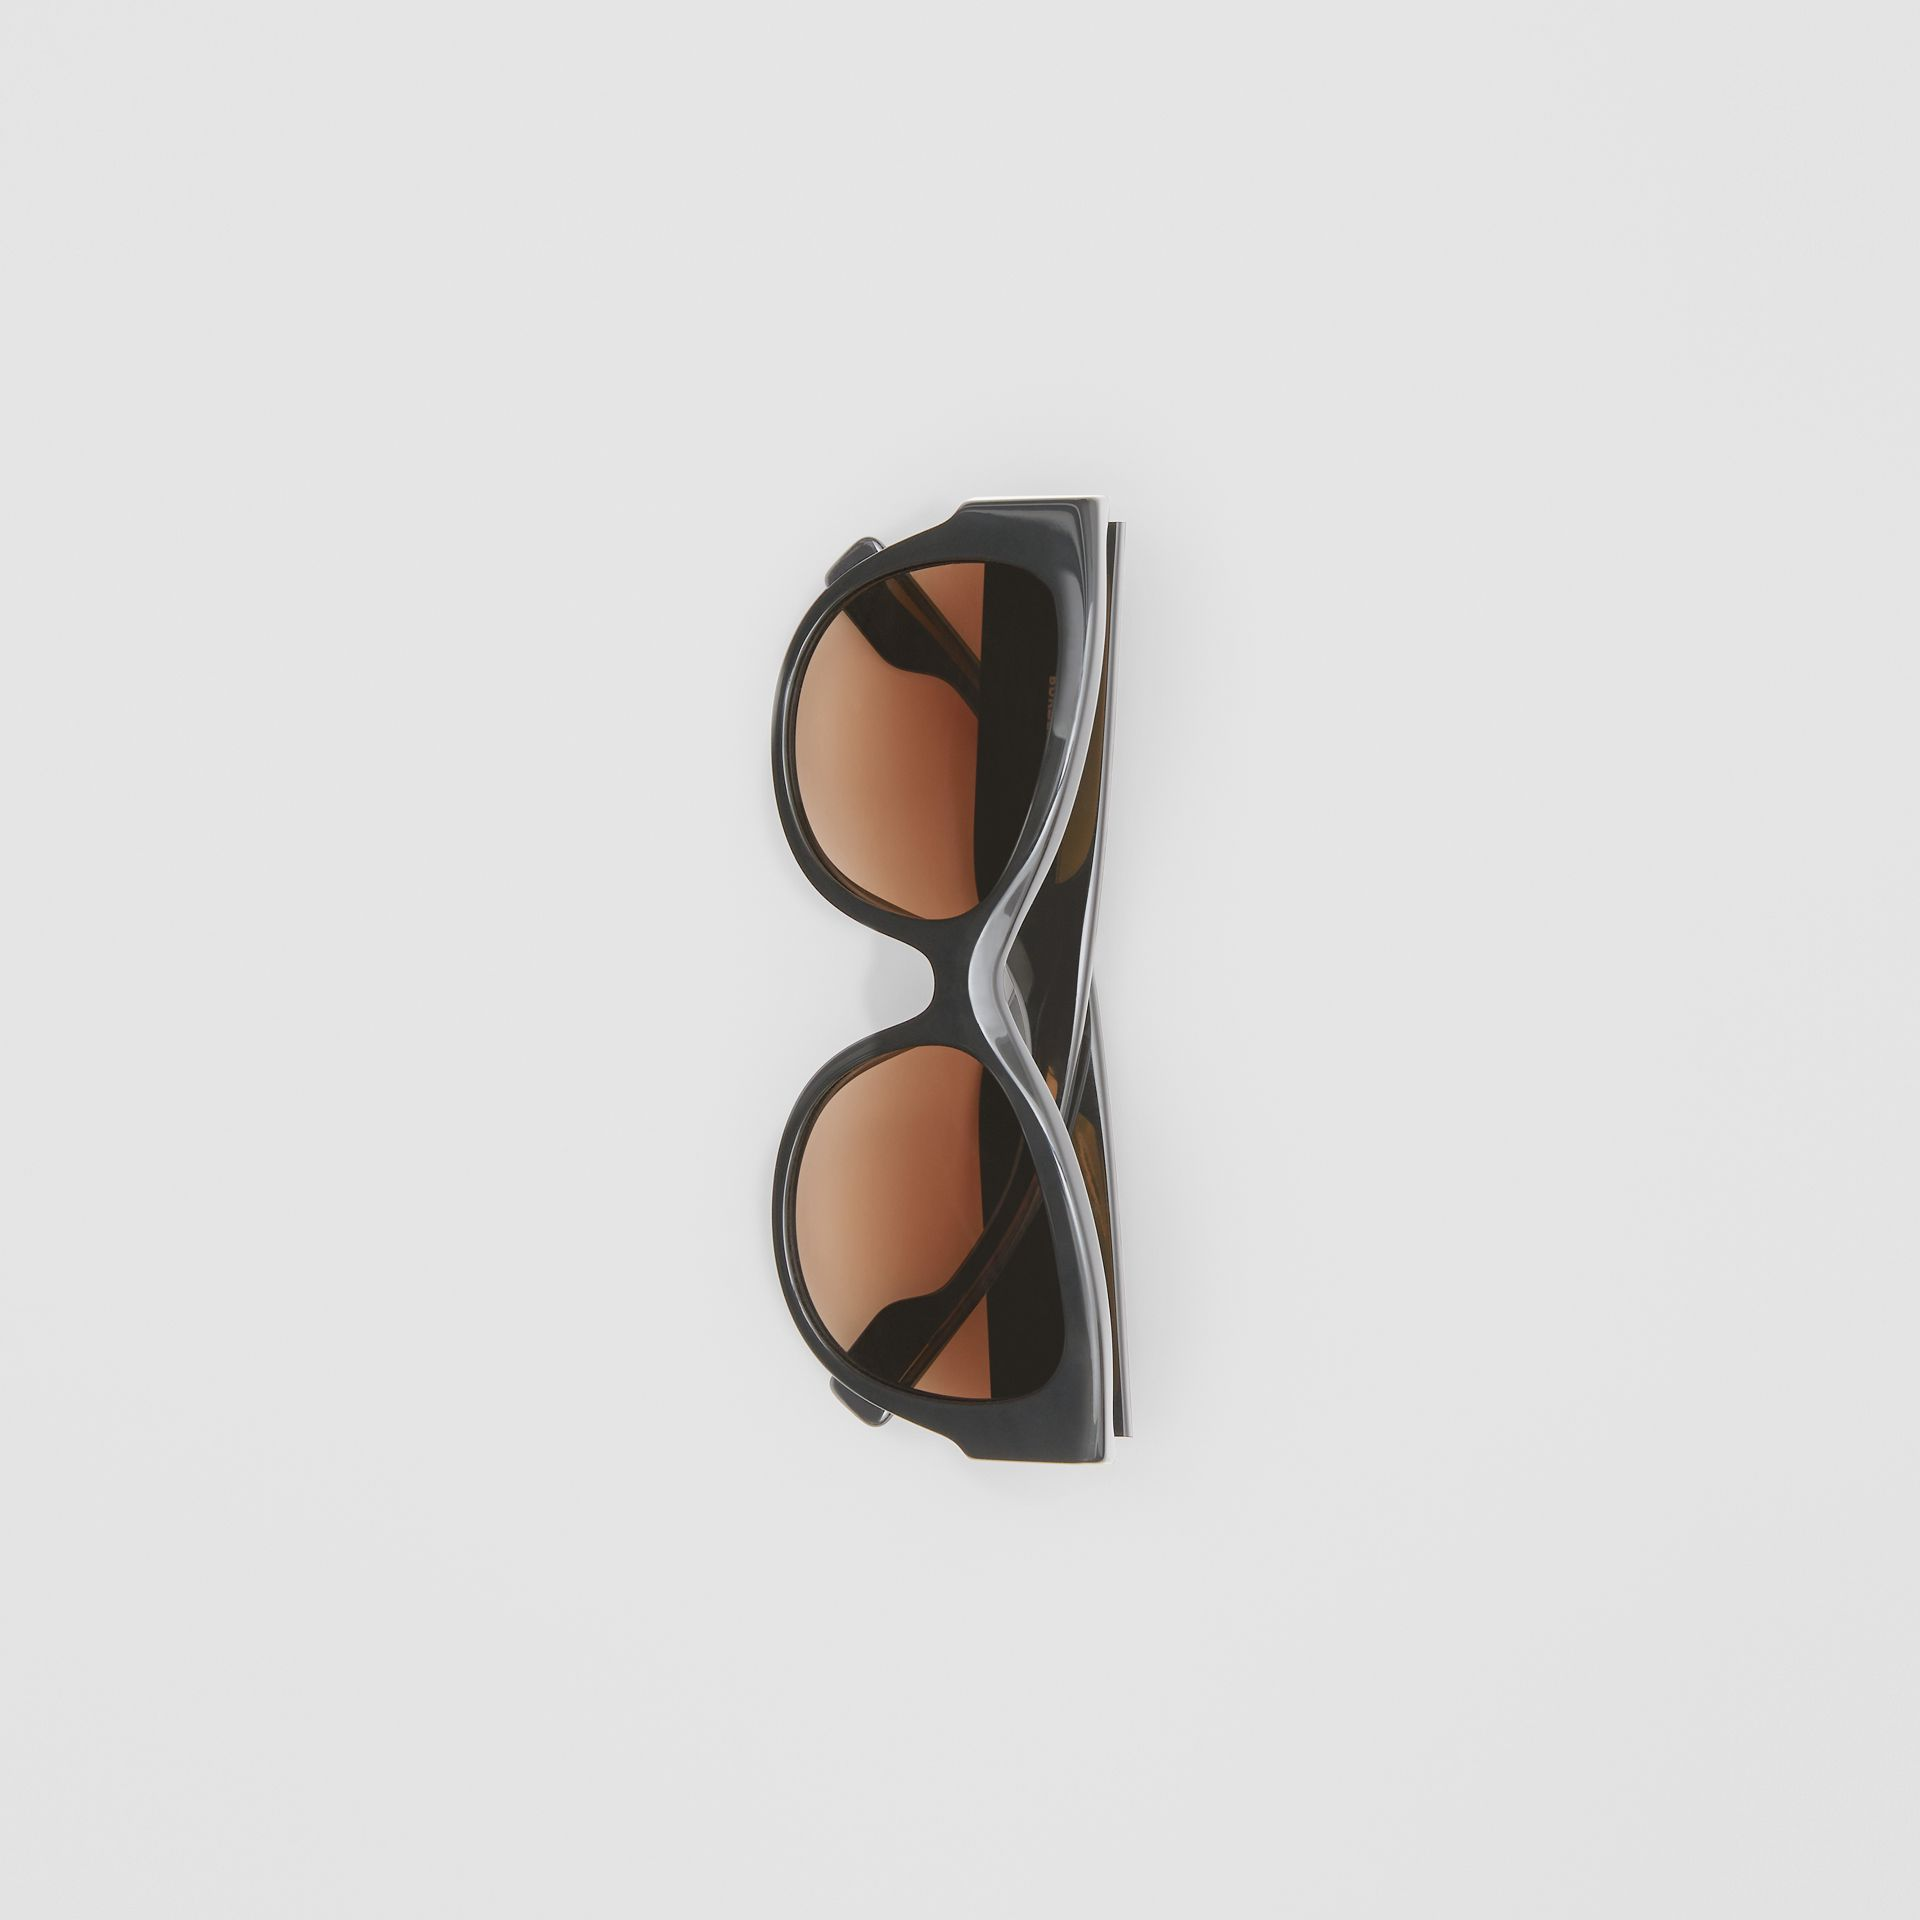 Monogram Detail Butterfly Frame Sunglasses in Black / Beige - Women | Burberry - gallery image 2